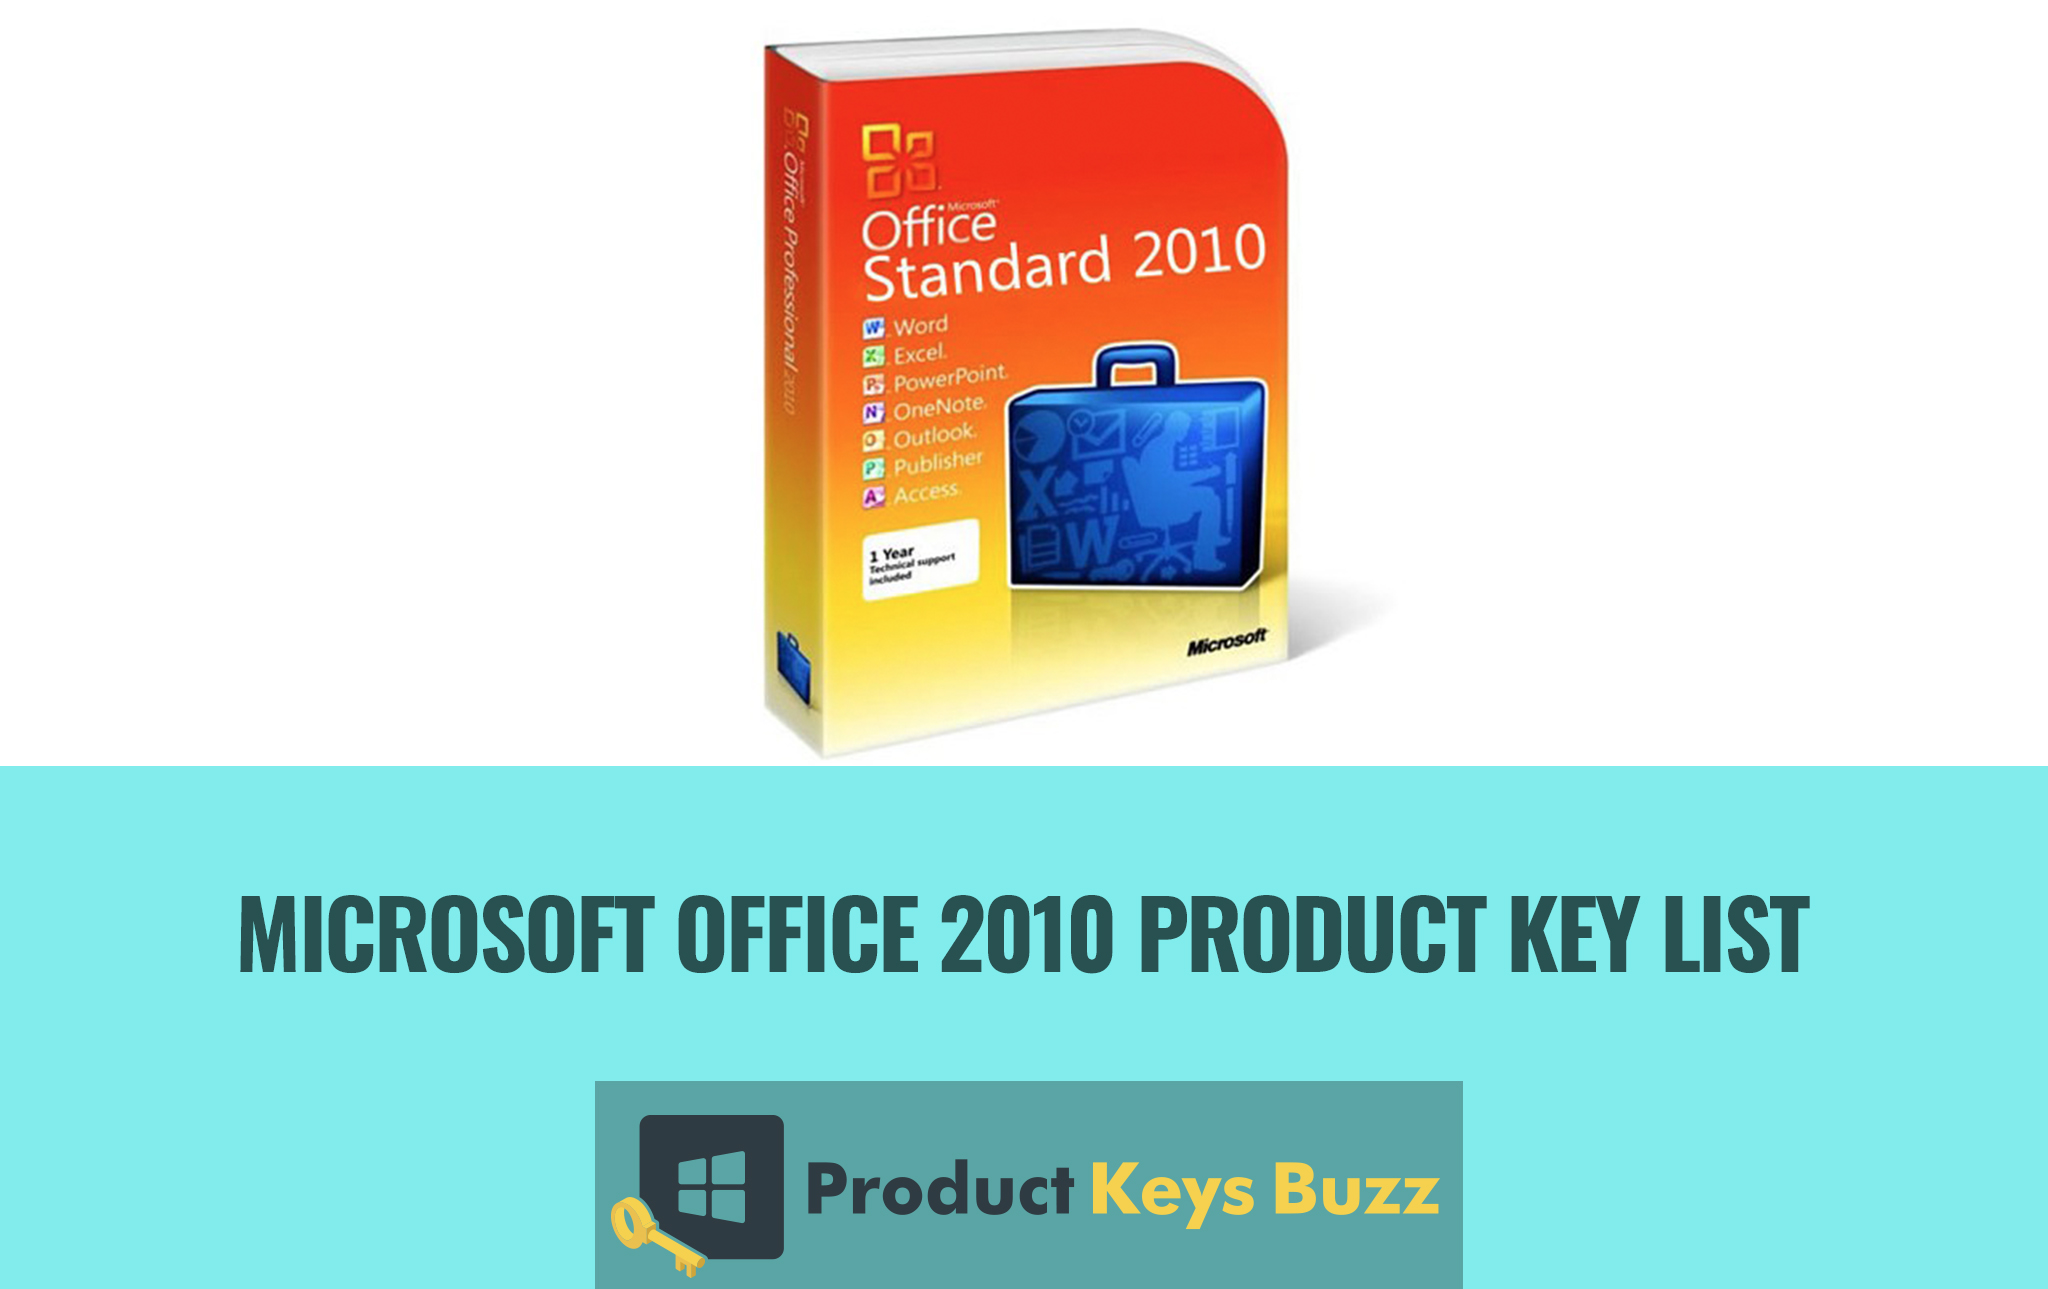 microsoft office 2003 free download with product key for windows xp